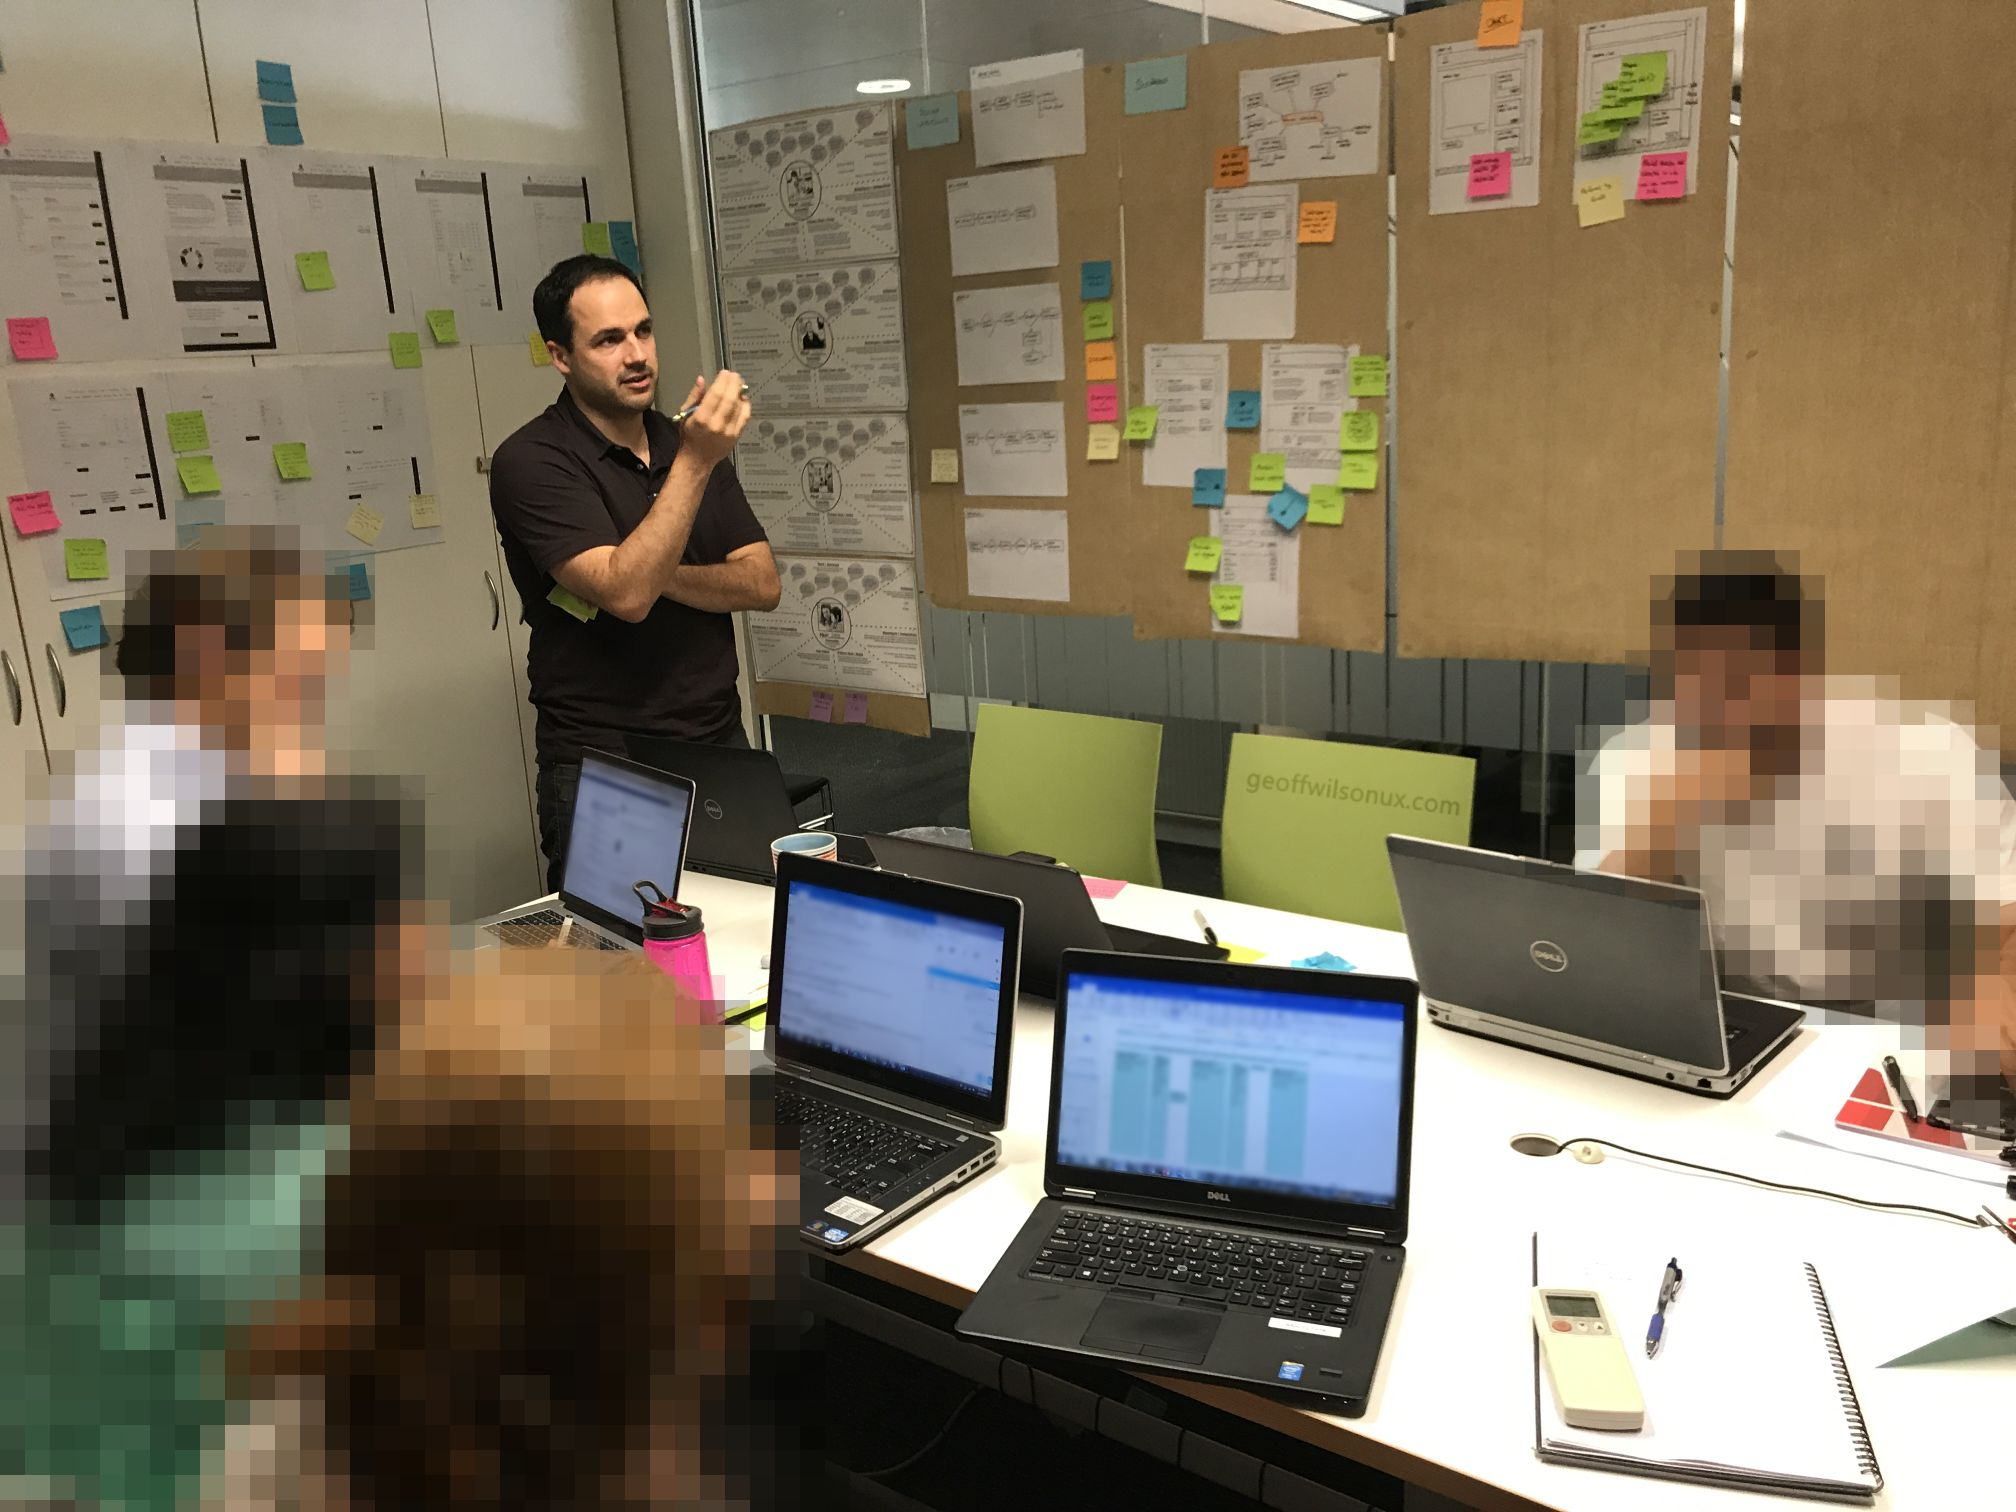 Throughout this first design sprints, I would help explain what the UI vendor and I had come up with to our product owner, developers, testers, etc to get their perspective and feedback early about what would or wouldn't be possible along with insights into the necessary functionality that we may have missed. Flexibiliy and being open to accomodating acceptance criteria updates, scope changes, and trade-offs was key here. We have since continued with similar design processes in the releases we've made or are in development post go-live with the 100% new website and backend systems in Nov 2018.